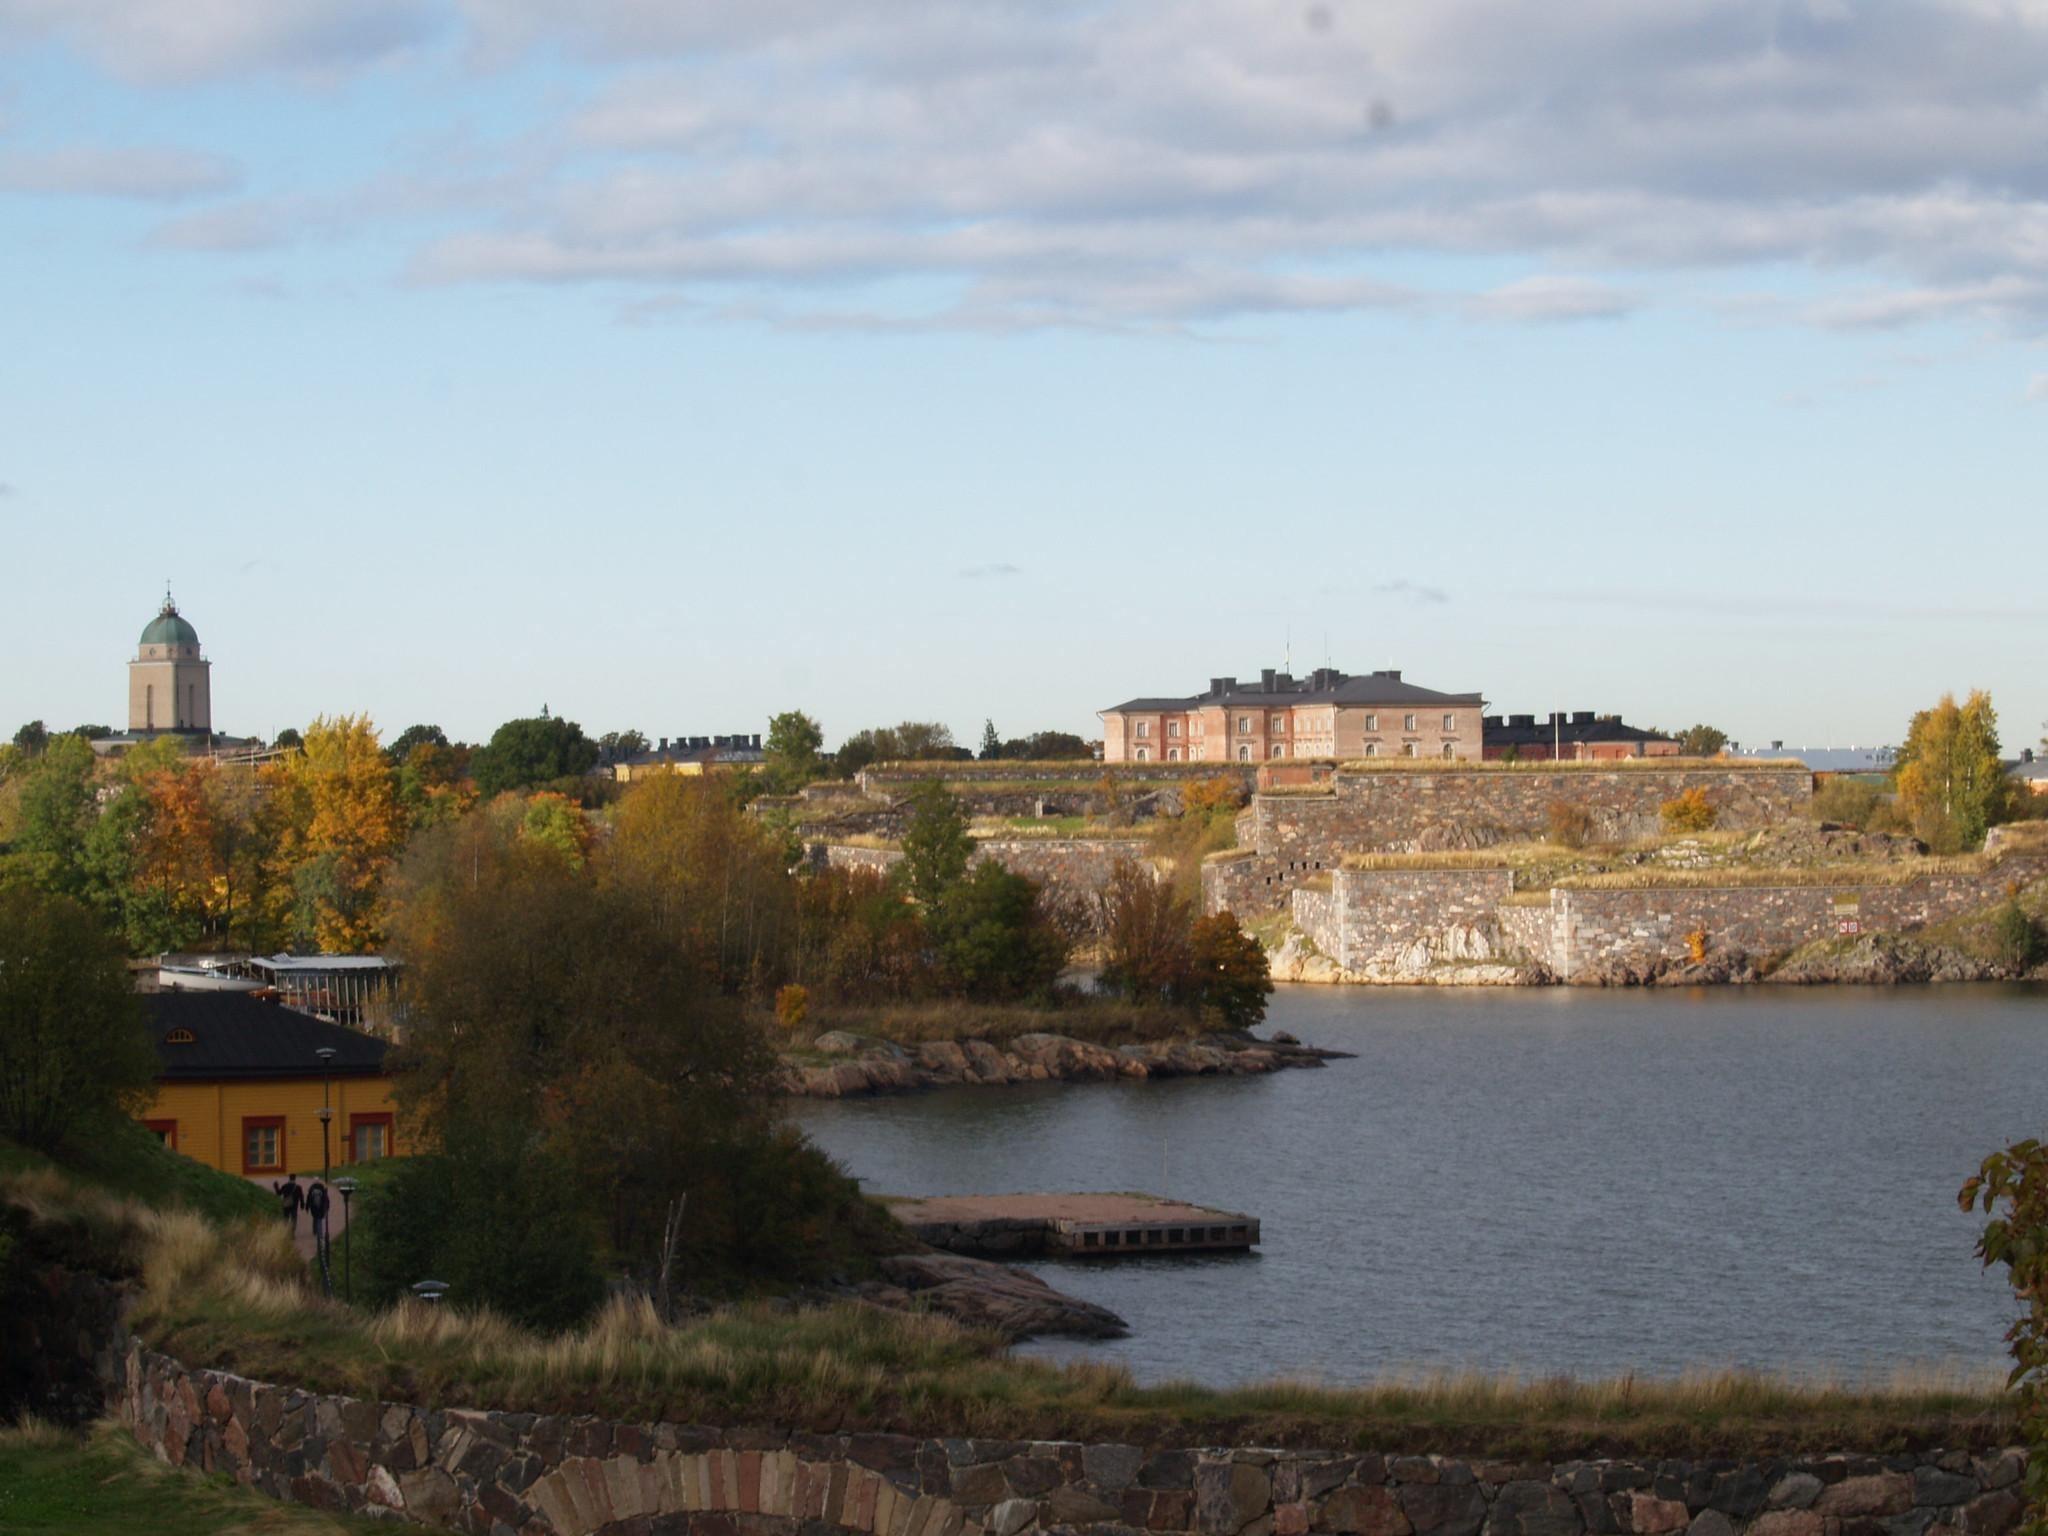 The island fortress of Suomenlinna, as seen from the shore